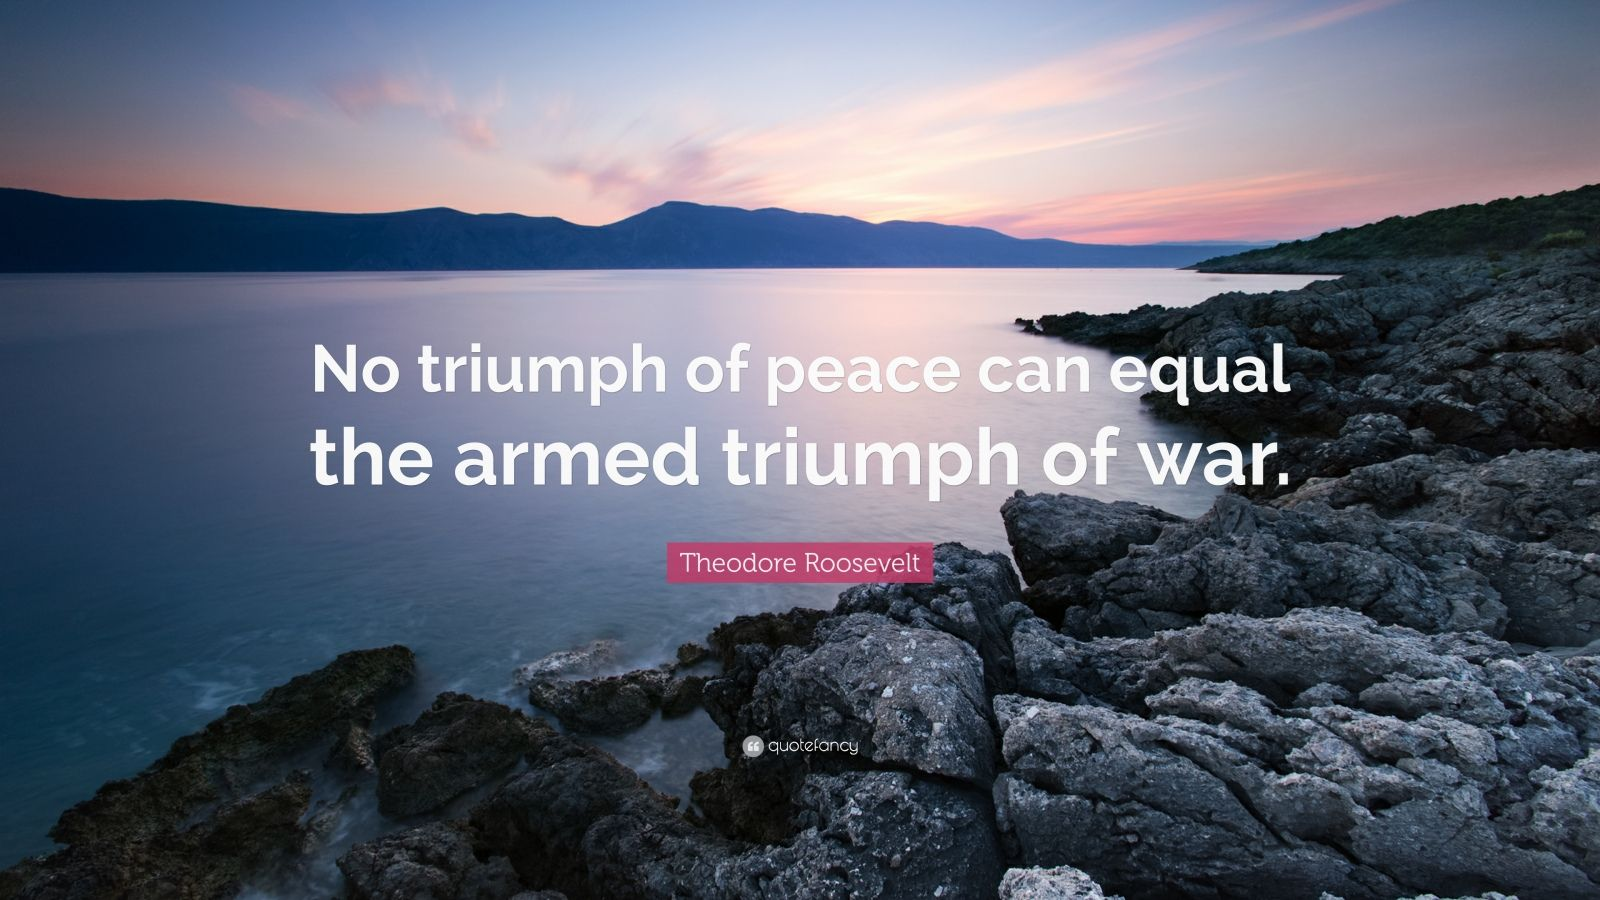 """Theodore Roosevelt Quote: """"No triumph of peace can equal the armed triumph of war."""""""